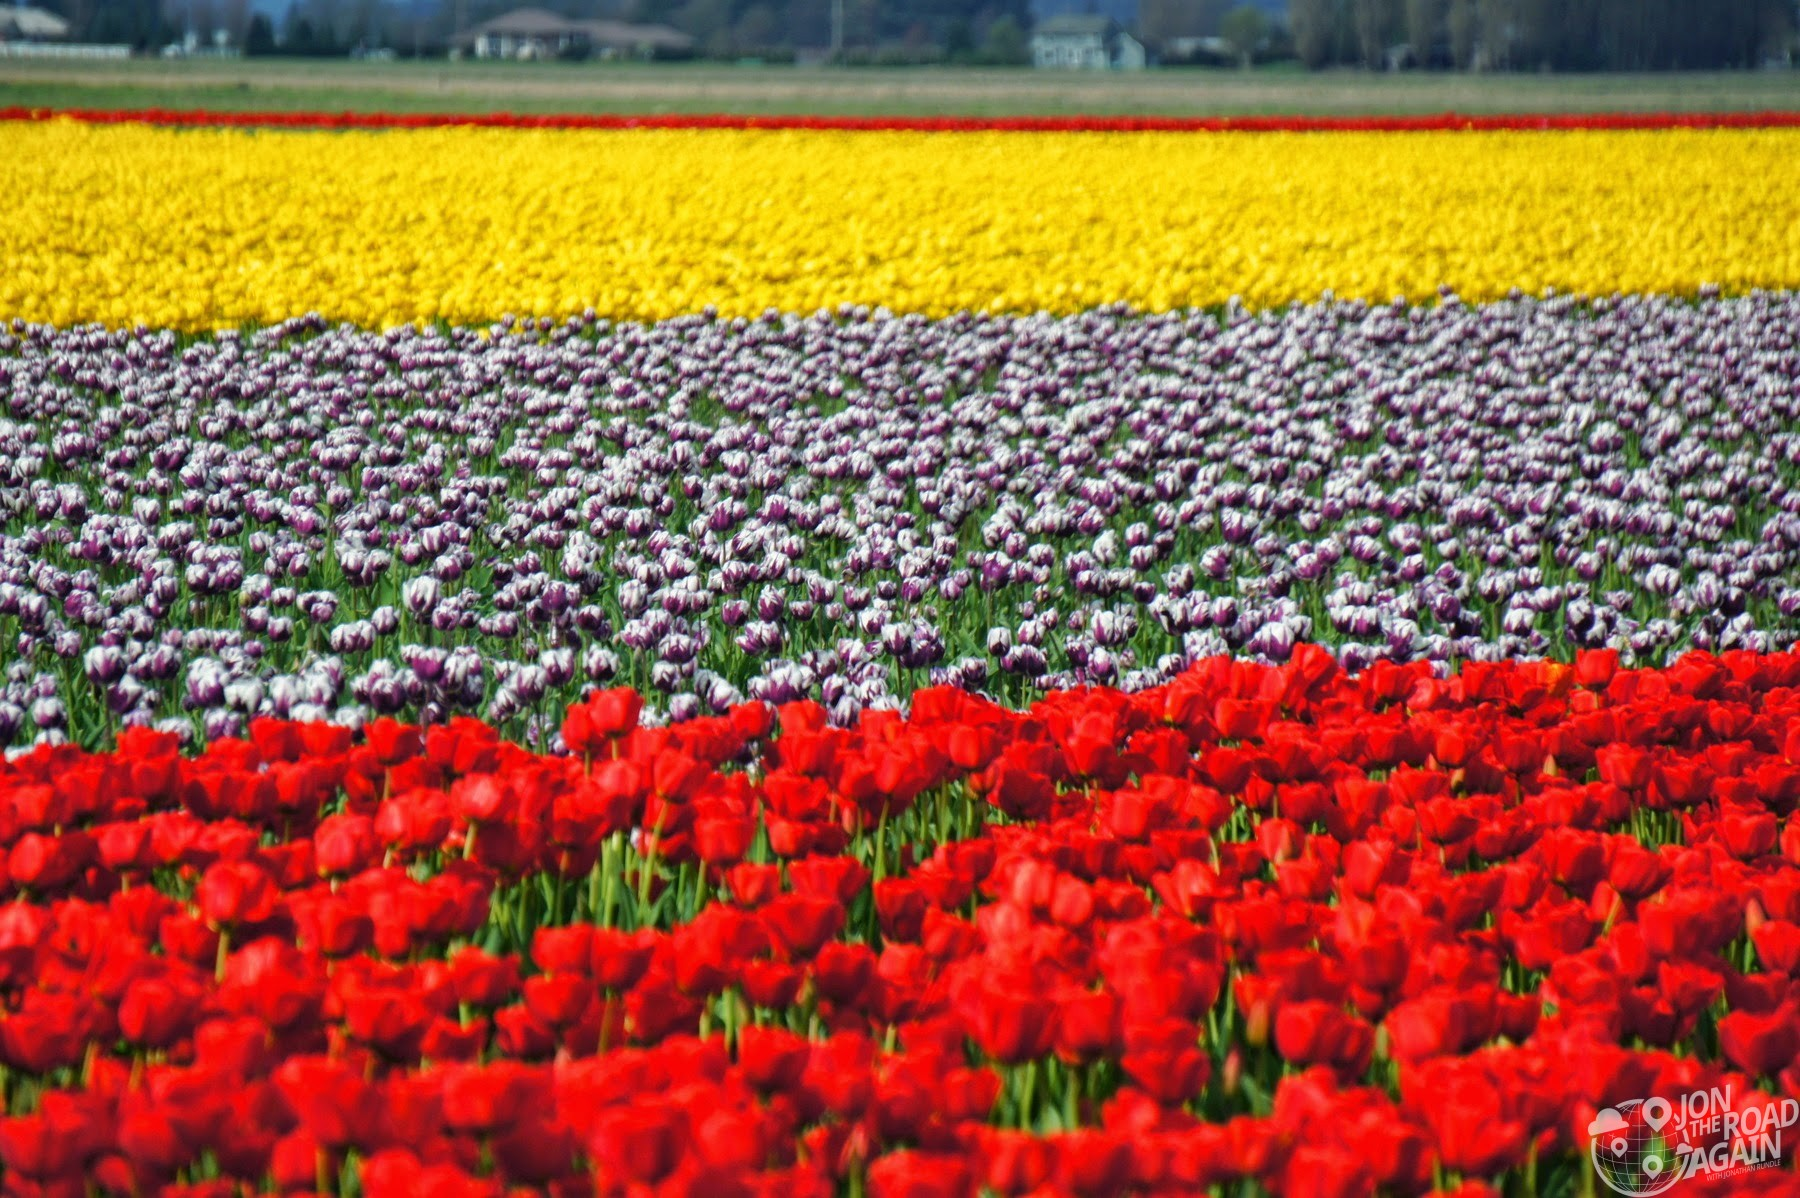 Skagit Vallet Tulip fields